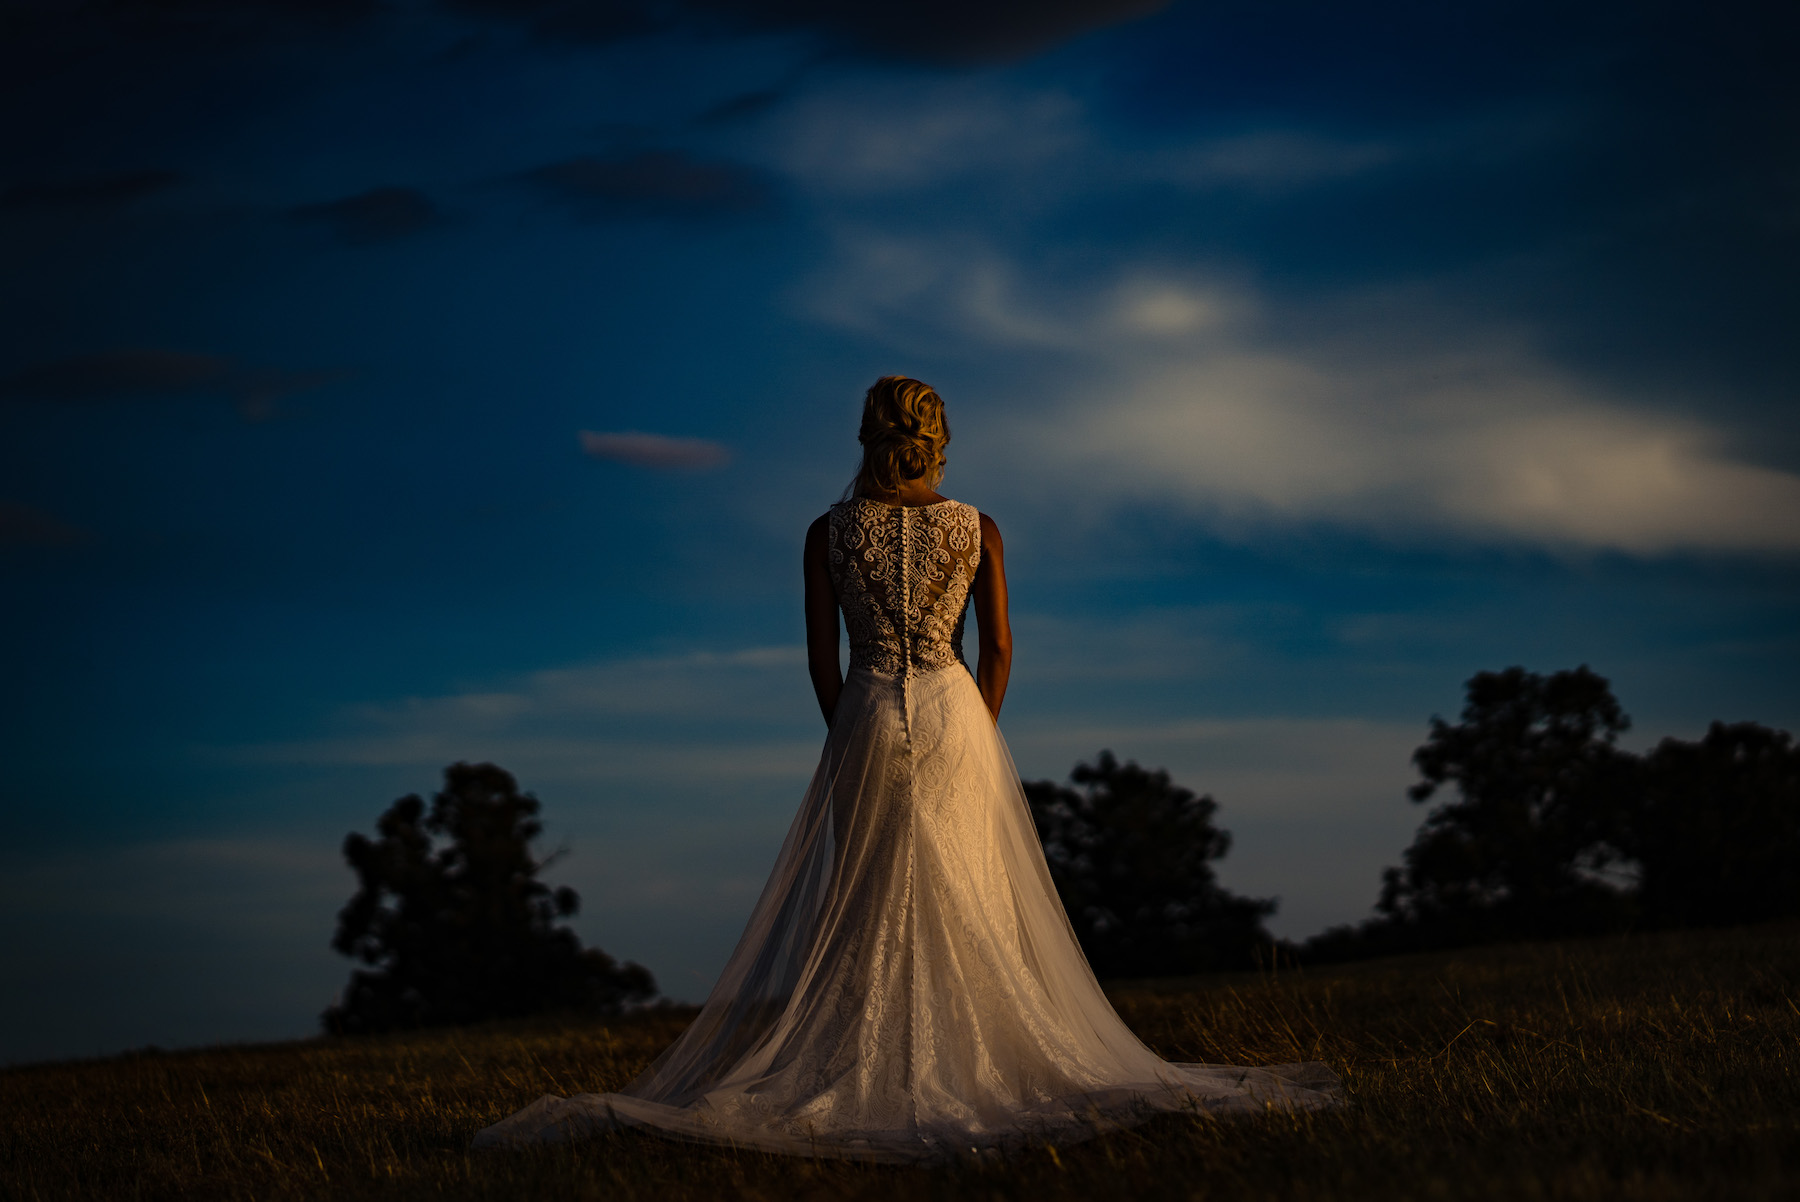 Bride with back turned. Host your small wedding or elopement up to 50 people at Osage House in Northwest Arkansas.